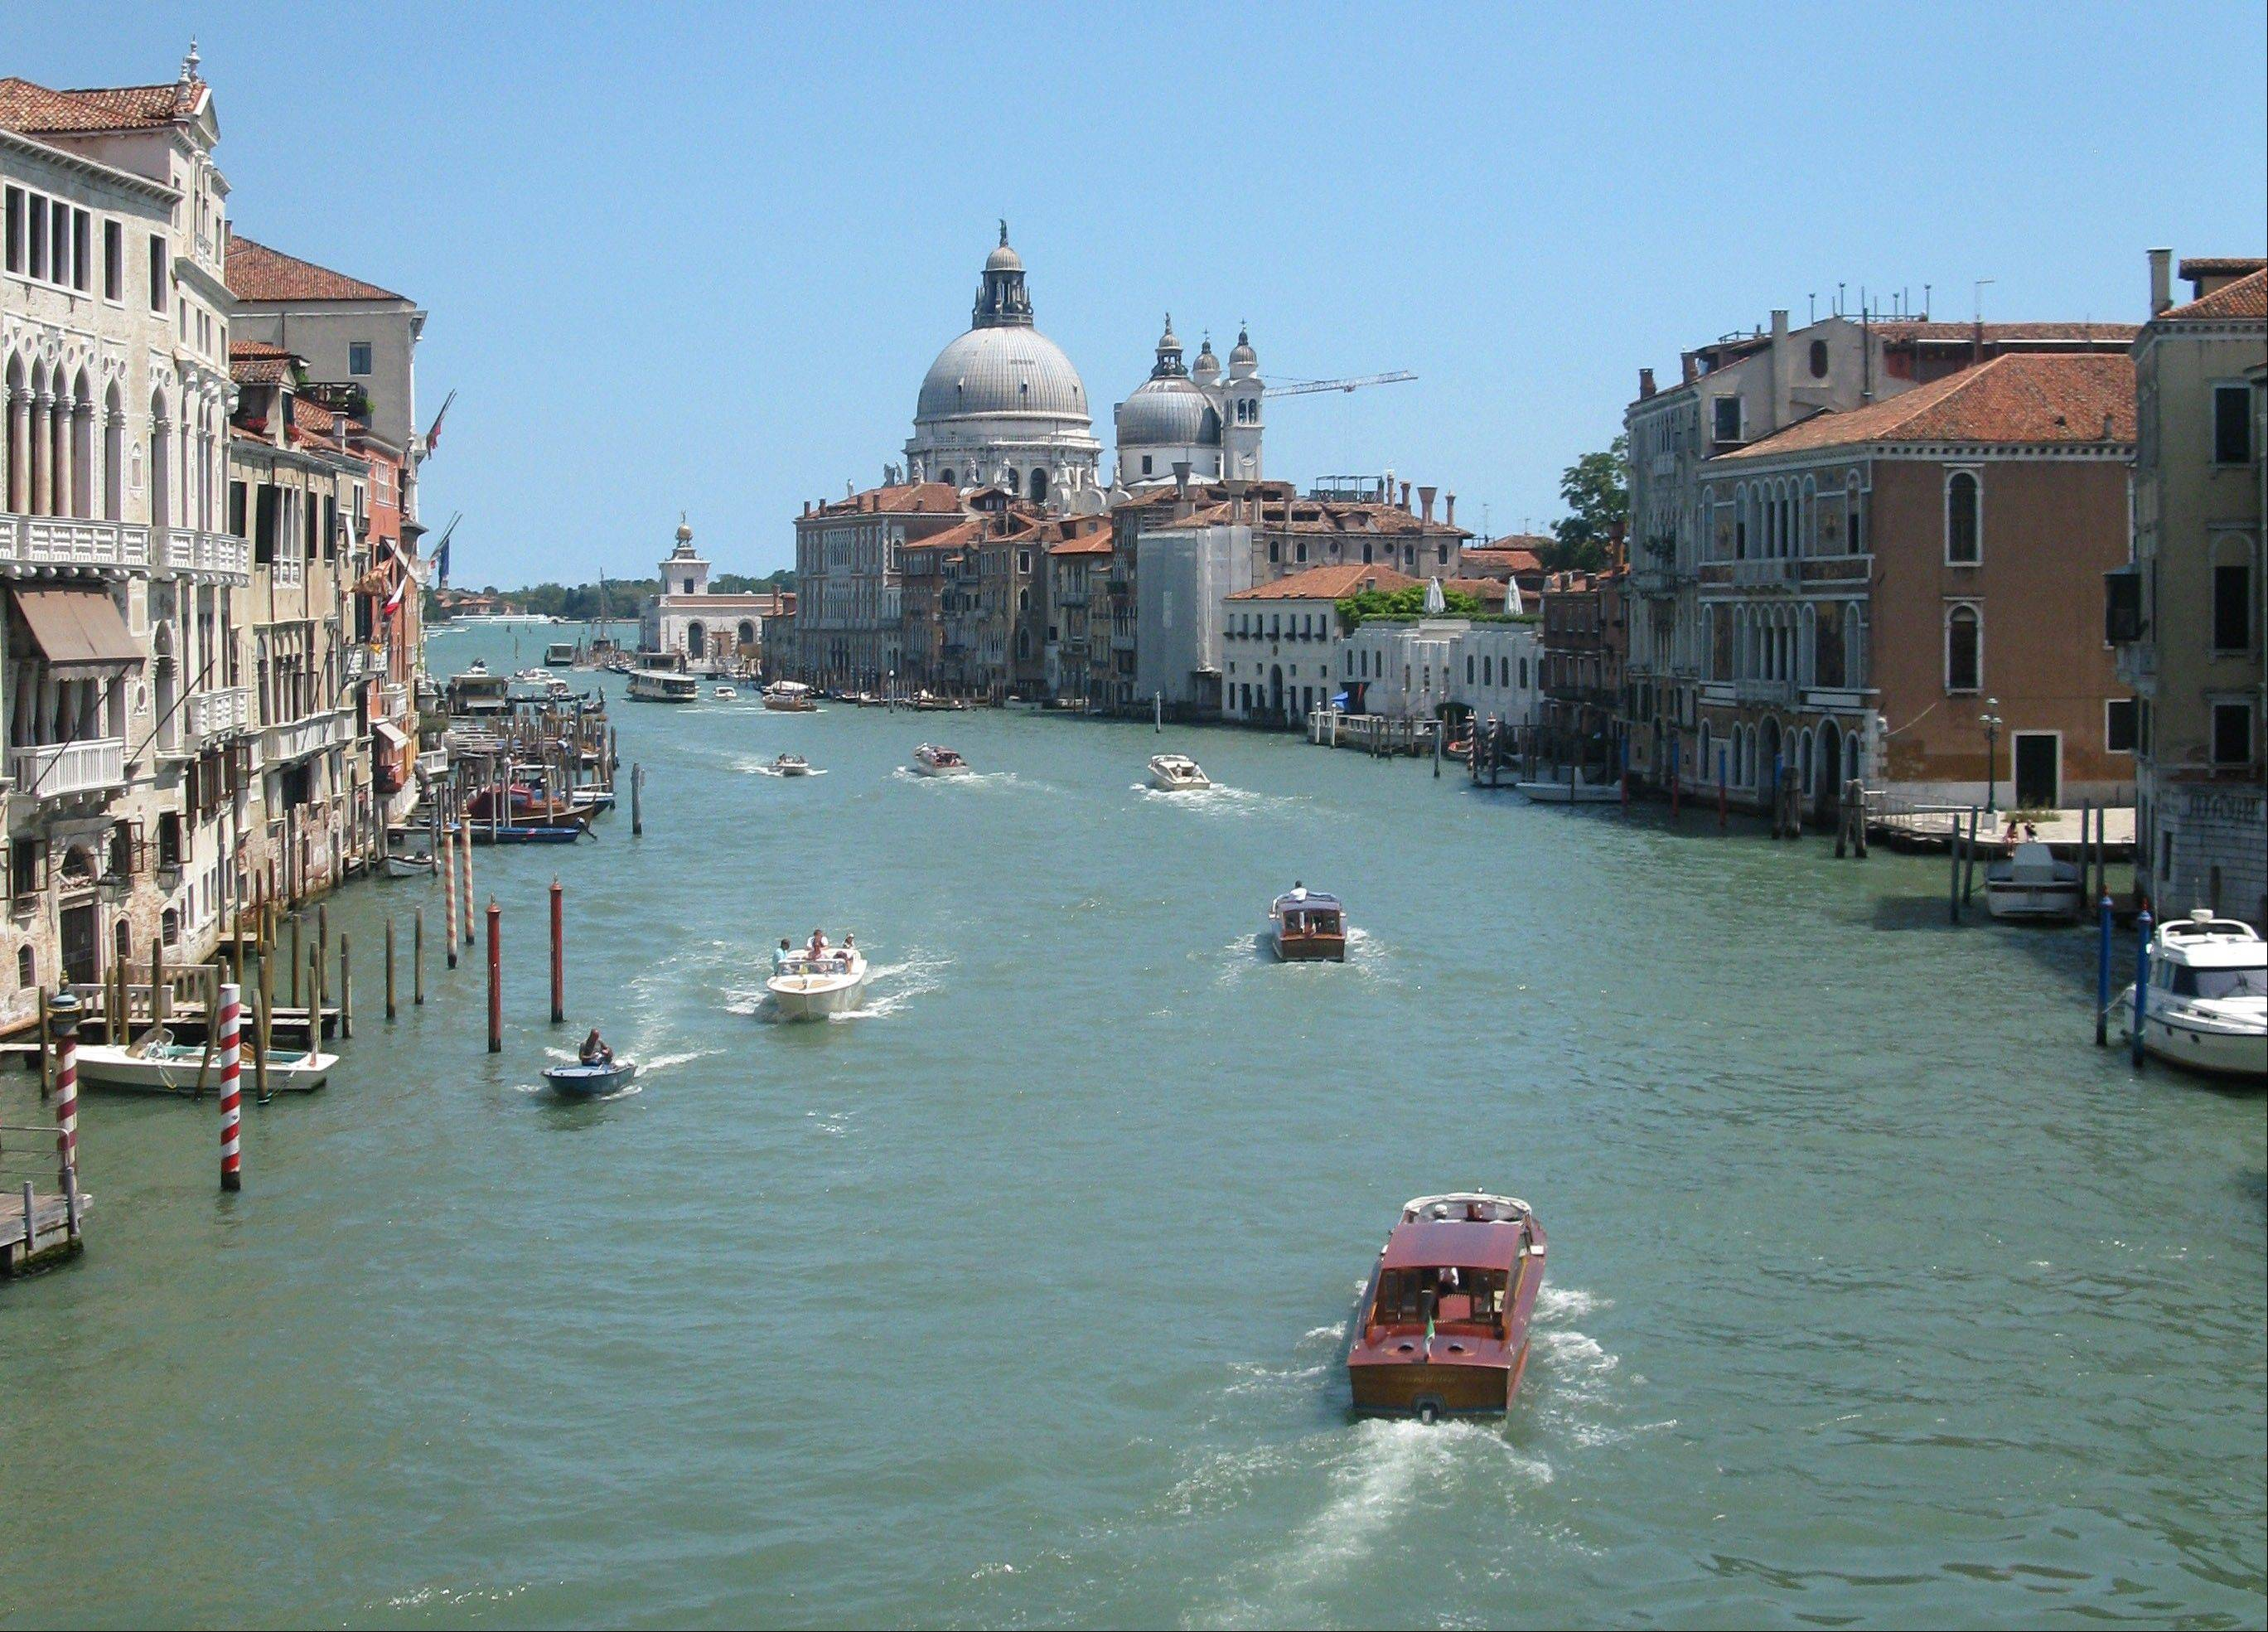 Water traffic bustles on the Grande Canale in the heart of Venice.